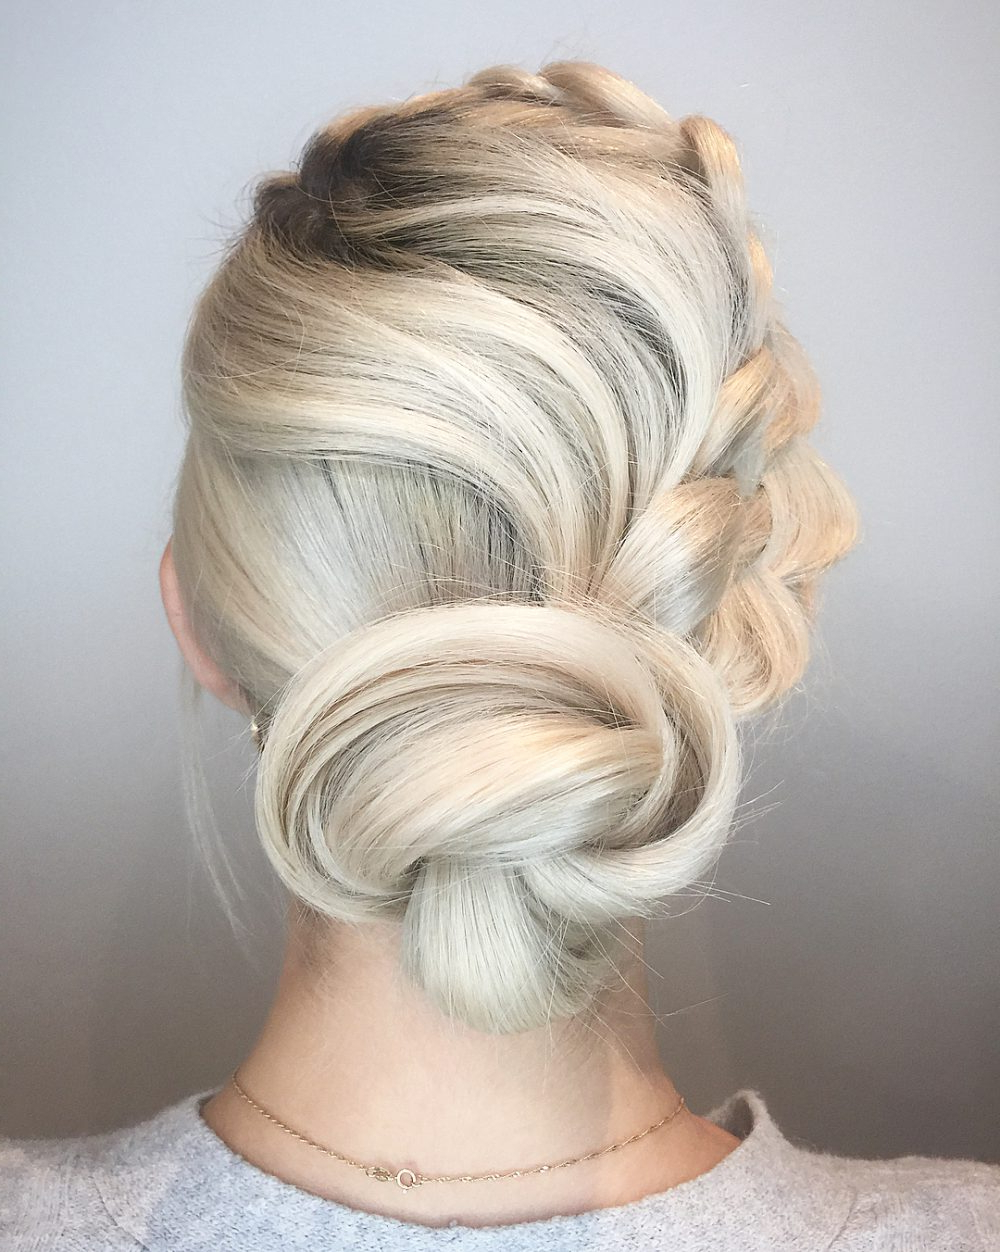 34 Cutest Prom Updos For 2019 – Easy Updo Hairstyles Throughout Most Up To Date Asymmetrical Knotted Prom Updos (View 7 of 20)